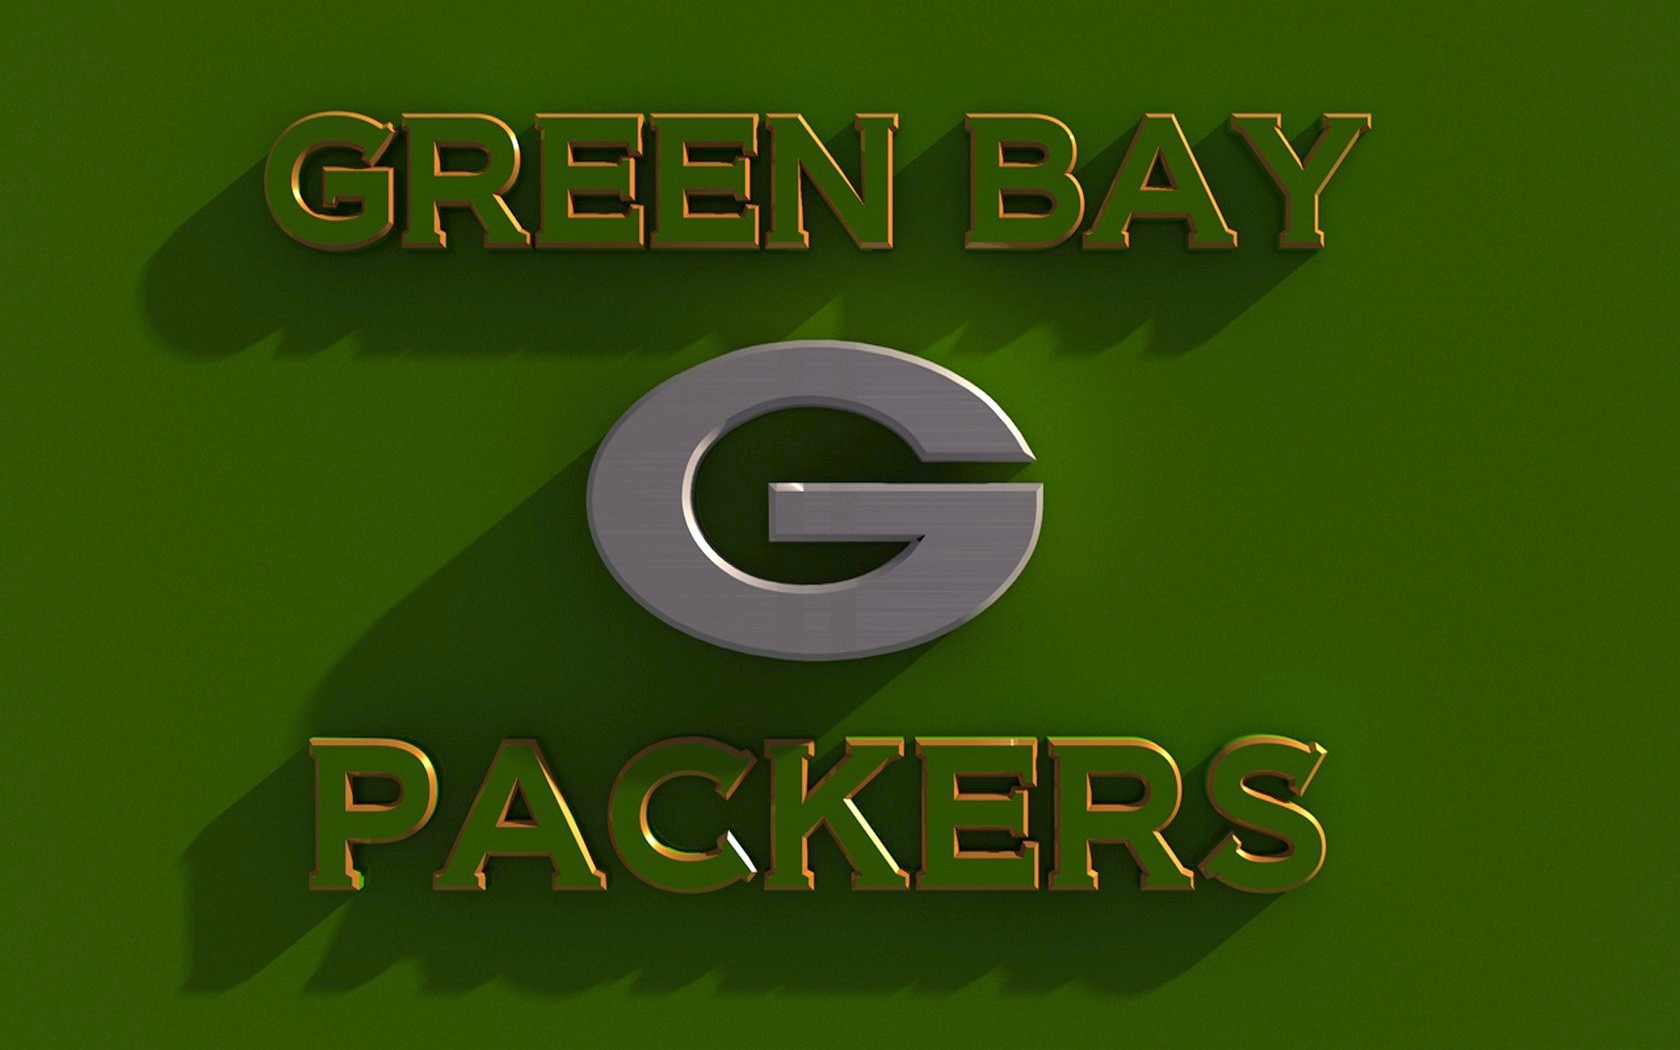 Green Bay Packer Wallpaper: [50+] Green Bay Packers Wallpaper On WallpaperSafari